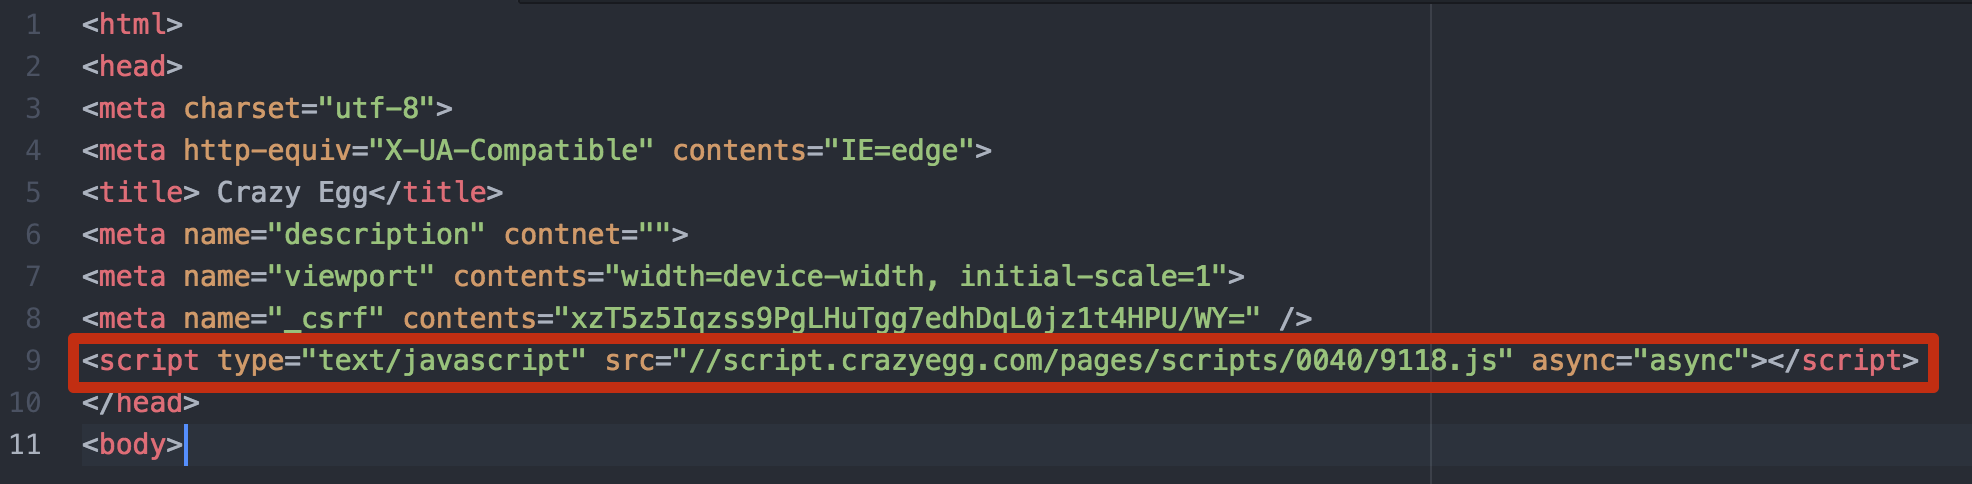 How To Manually Install Crazy Egg Crazy Egg Knowledge Base